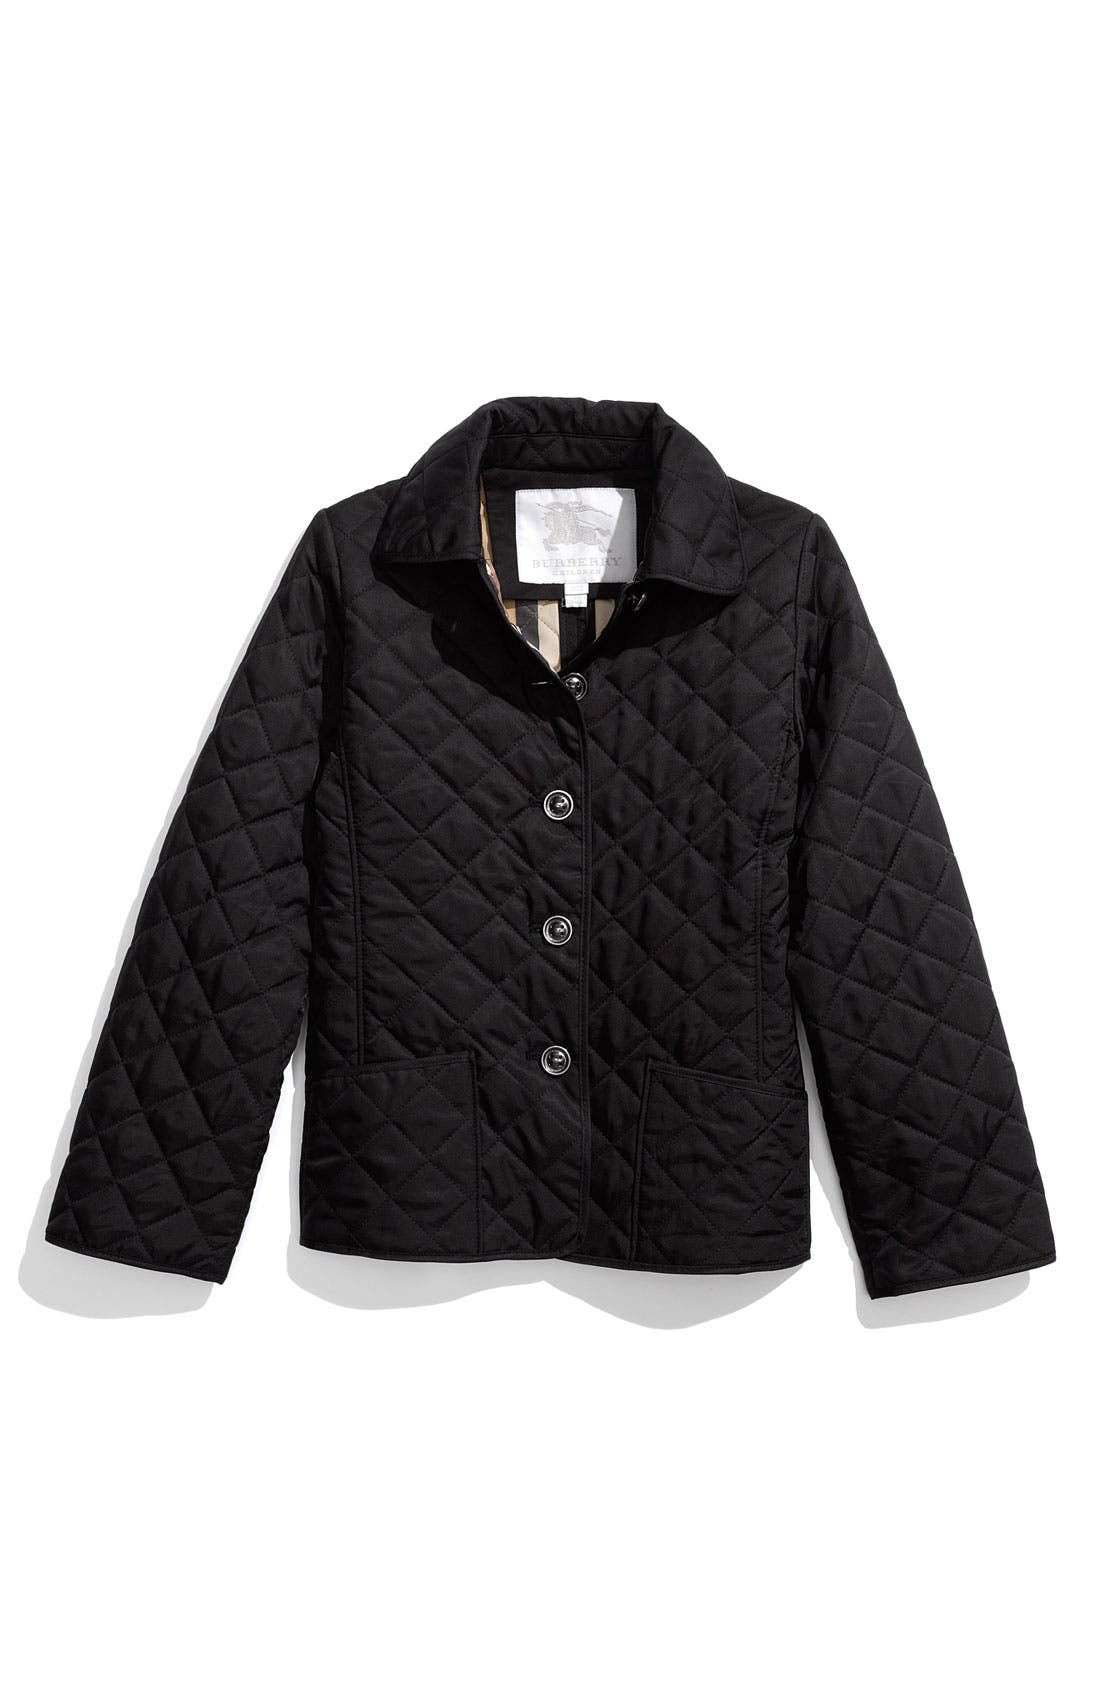 Alternate Image 1 Selected - Burberry Quilted Jacket (Big Girls)